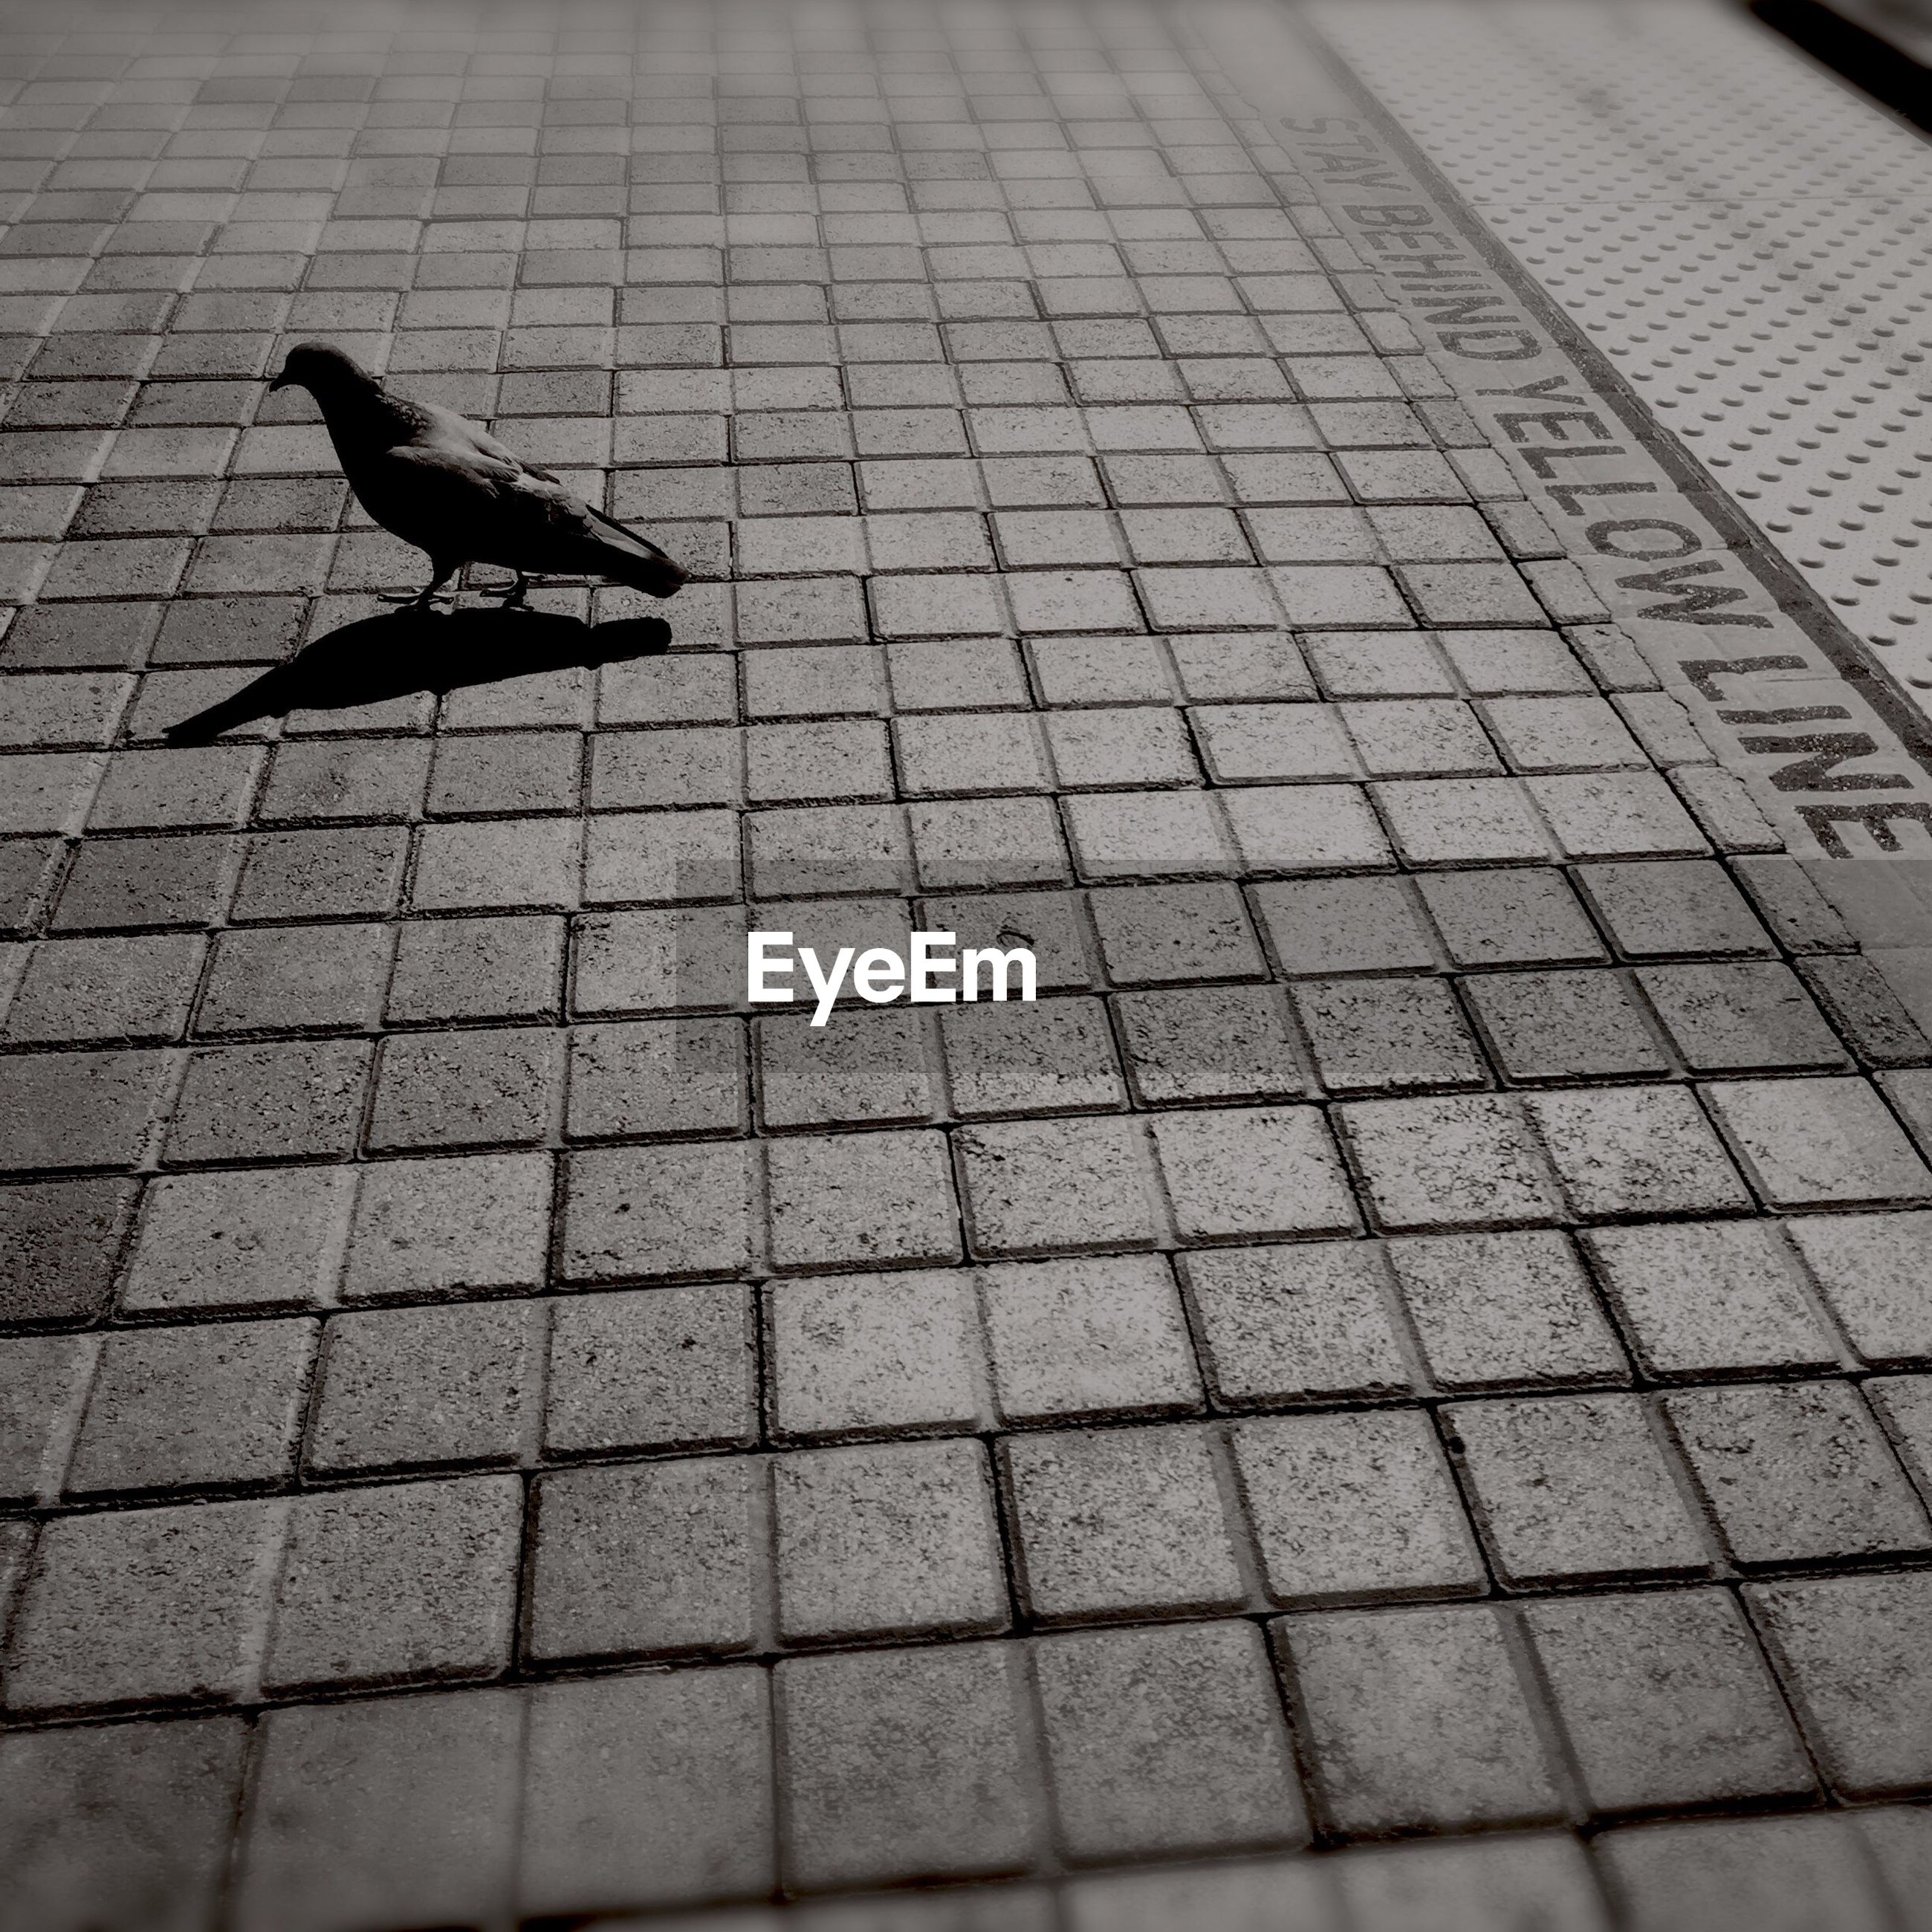 animal themes, one animal, bird, animals in the wild, cobblestone, wildlife, street, flying, high angle view, pigeon, pavement, spread wings, outdoors, shadow, sunlight, paving stone, full length, day, no people, footpath